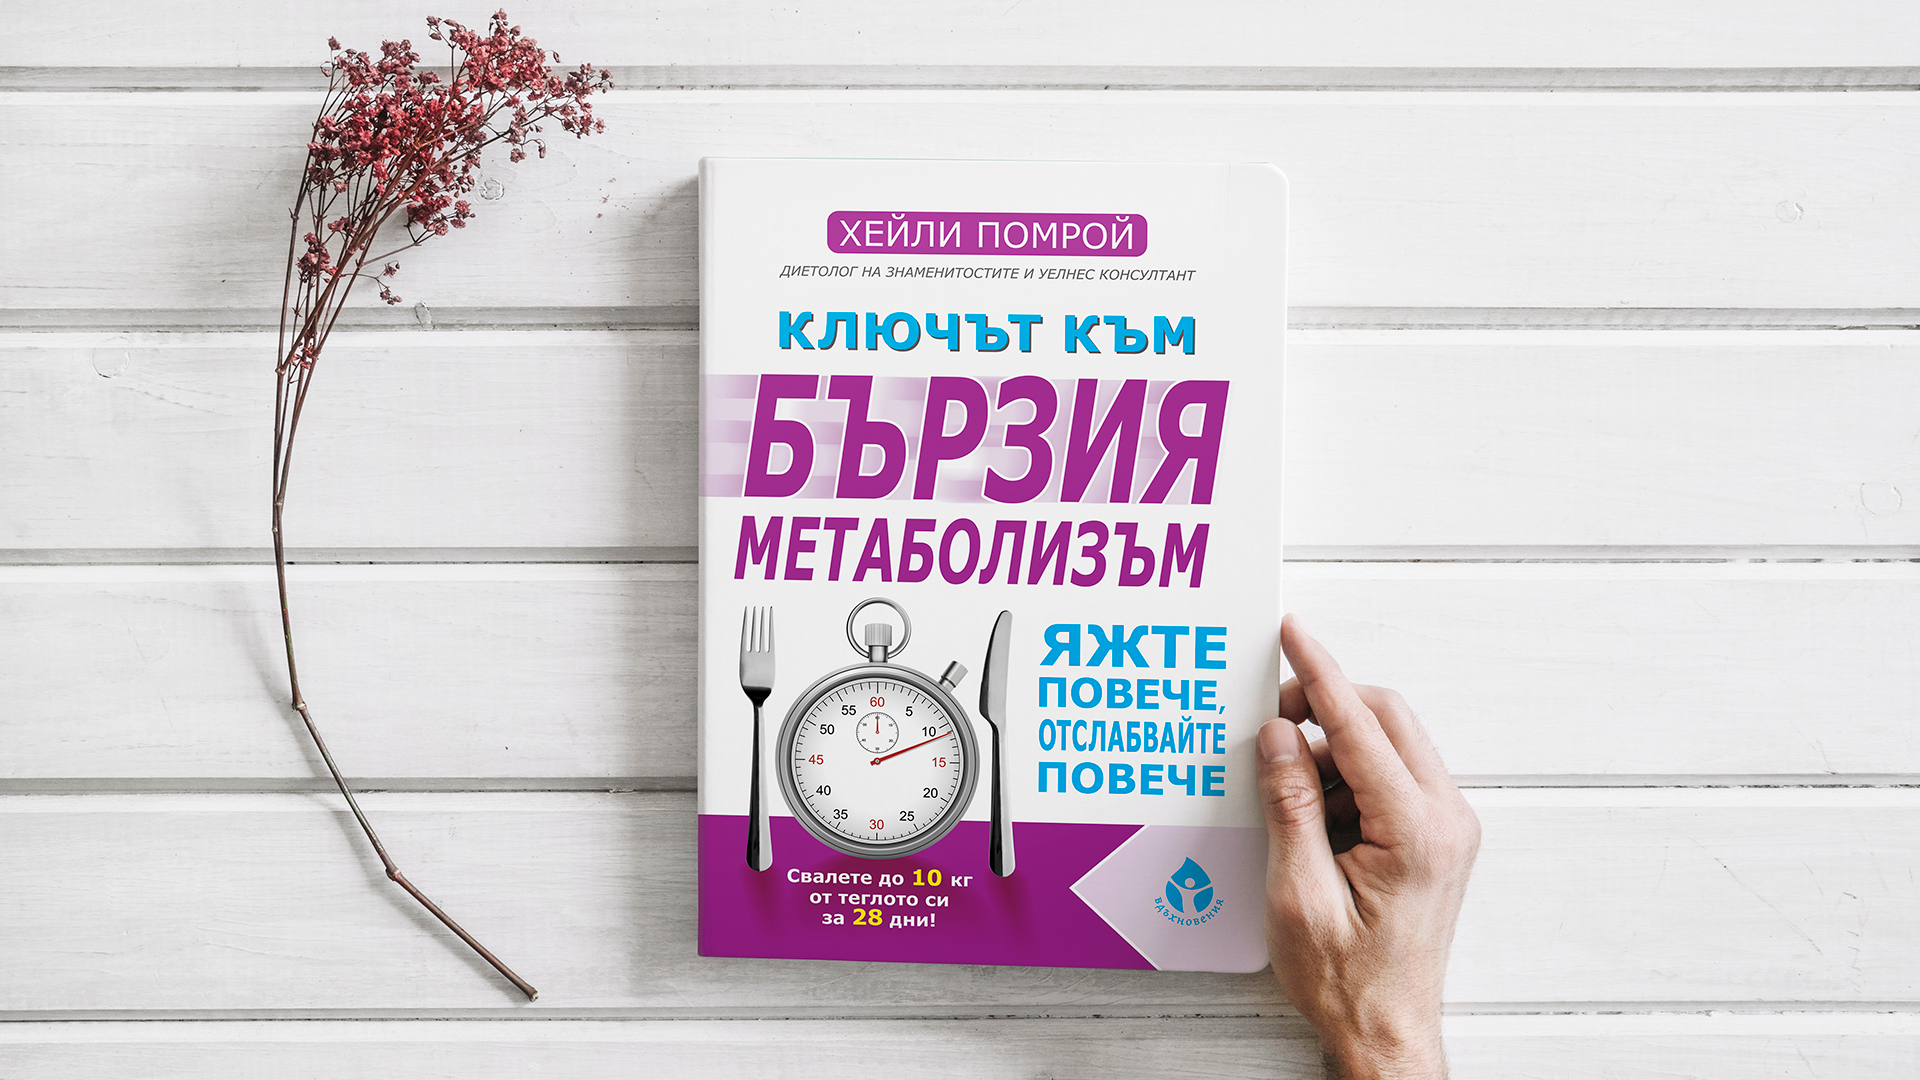 http://3con.eu/newsroom/wp-content/uploads/2018/03/Fast_metabolism-fb-cover.png